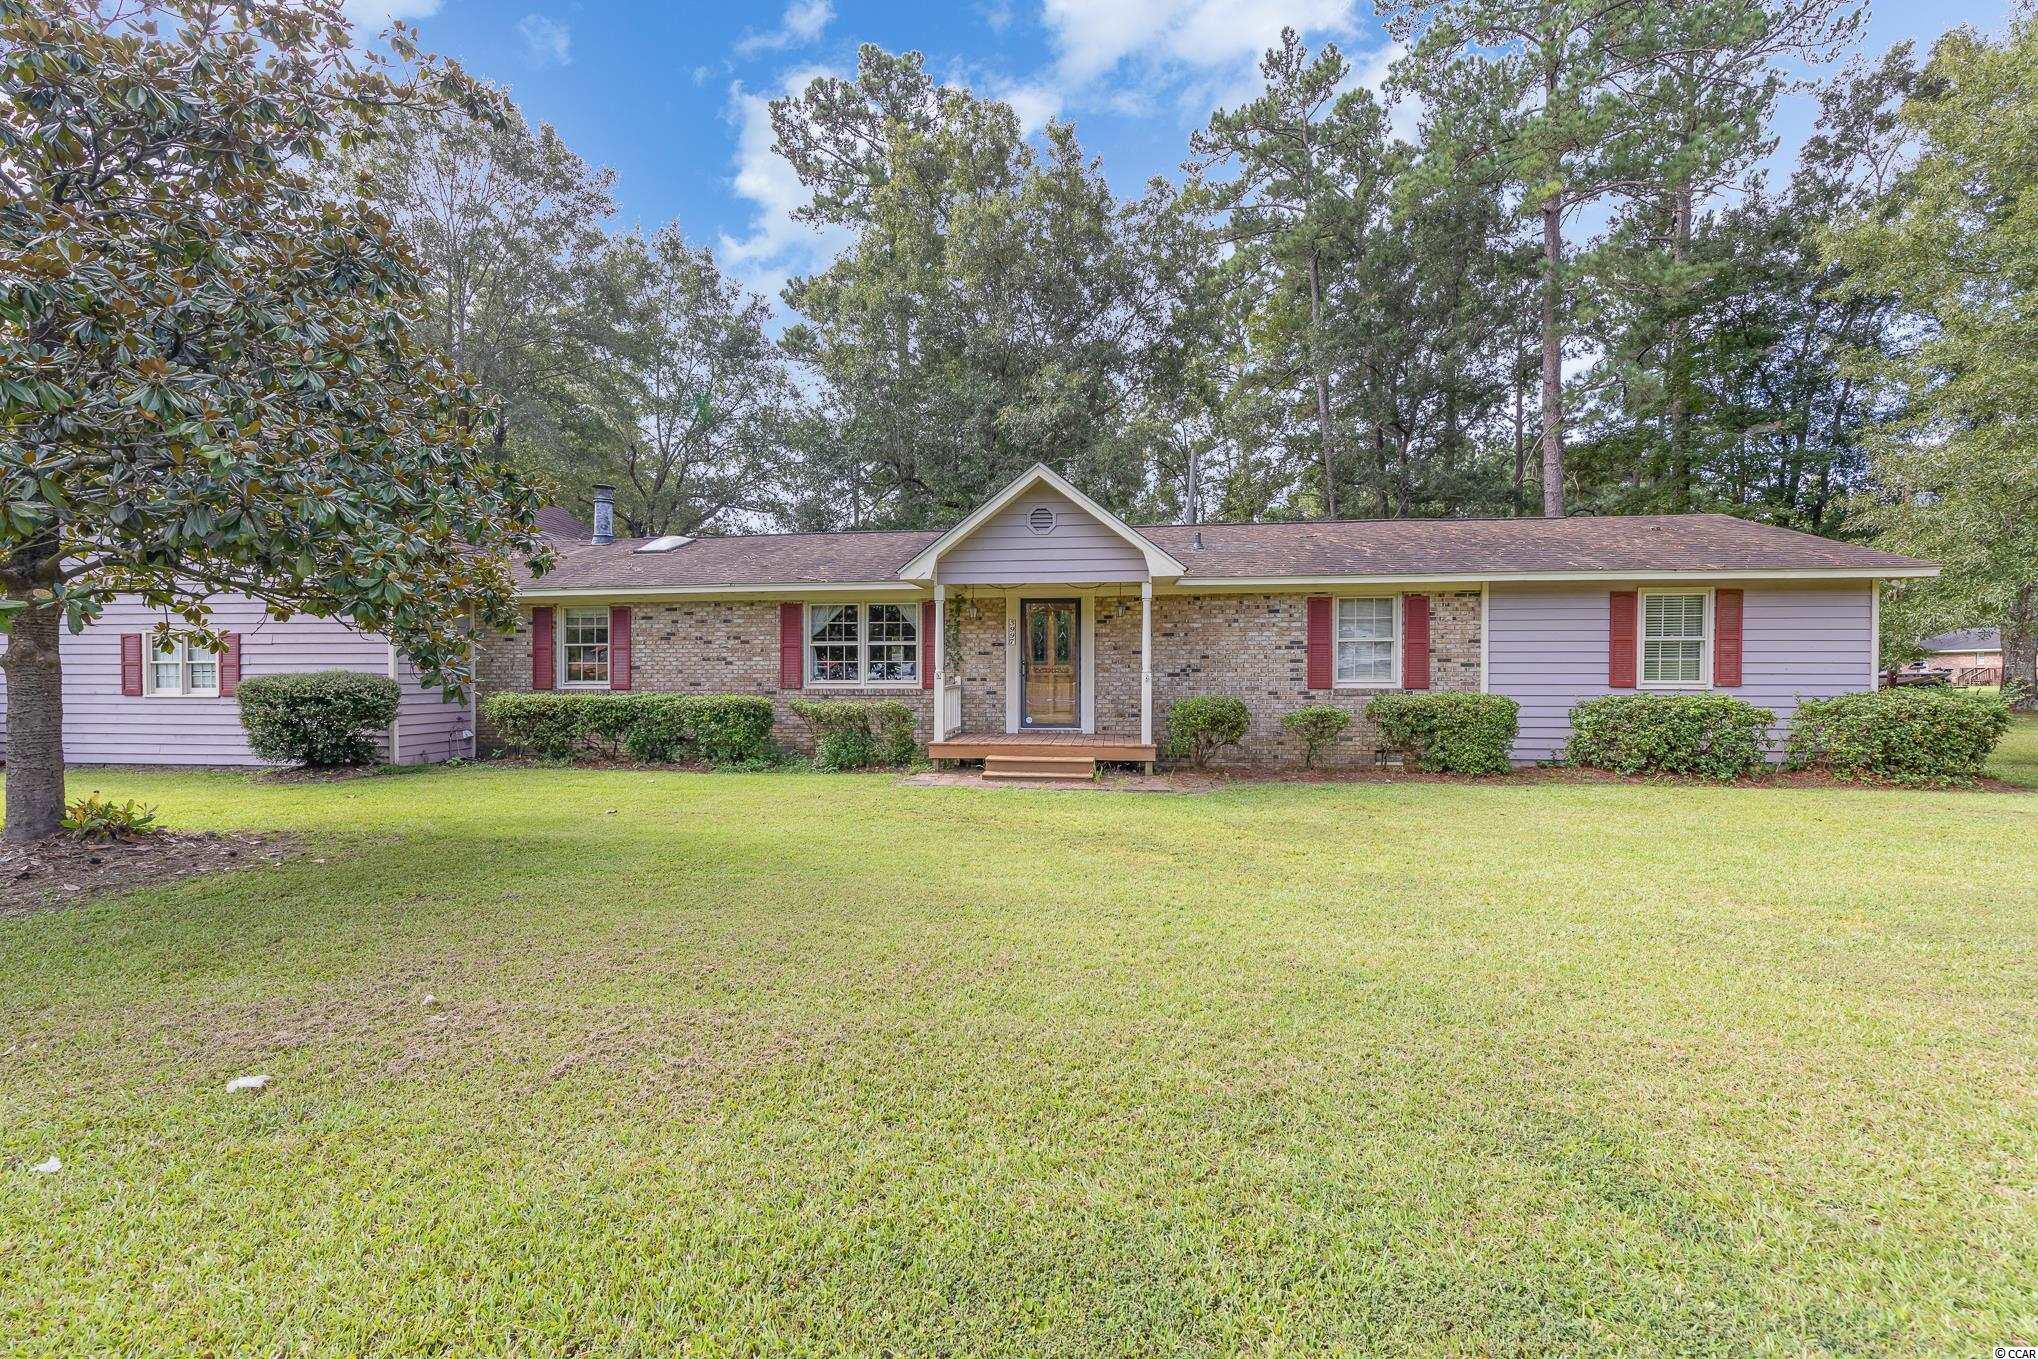 A great opportunity to own a 3 bedroom, 3 full bath home within a short distance of Conway on .66 acres of land and NO HOA.  This home features a large Master Bedroom with Jacuzzi Hot Tub, ensuite bathroom and it's own private entrance, there is a room attached that could be used as an office or turn it into a large Master Closet.  There is another large bedroom above the garage with an ensuite bathroom. The den features a very nice built-in desk and shelving for display and storage with a fireplace.  Step into the kitchen which features a small bar, pantry and plenty of cabinet space.  There is a living room which features beautiful wood paneling and plenty of room for additional entertaining space.  There is a small dining room that could be easily converted into a 4th bedroom that features 2 closets. The home features an oversized garage with a large storage room, new Hot Water Heater, New A/C replaced in Fall of 2020.  The crawlspace has been encapsulated with a dehumidifier.  There are 2 separate outbuildings for lots of storage!!  This home is a must see!!